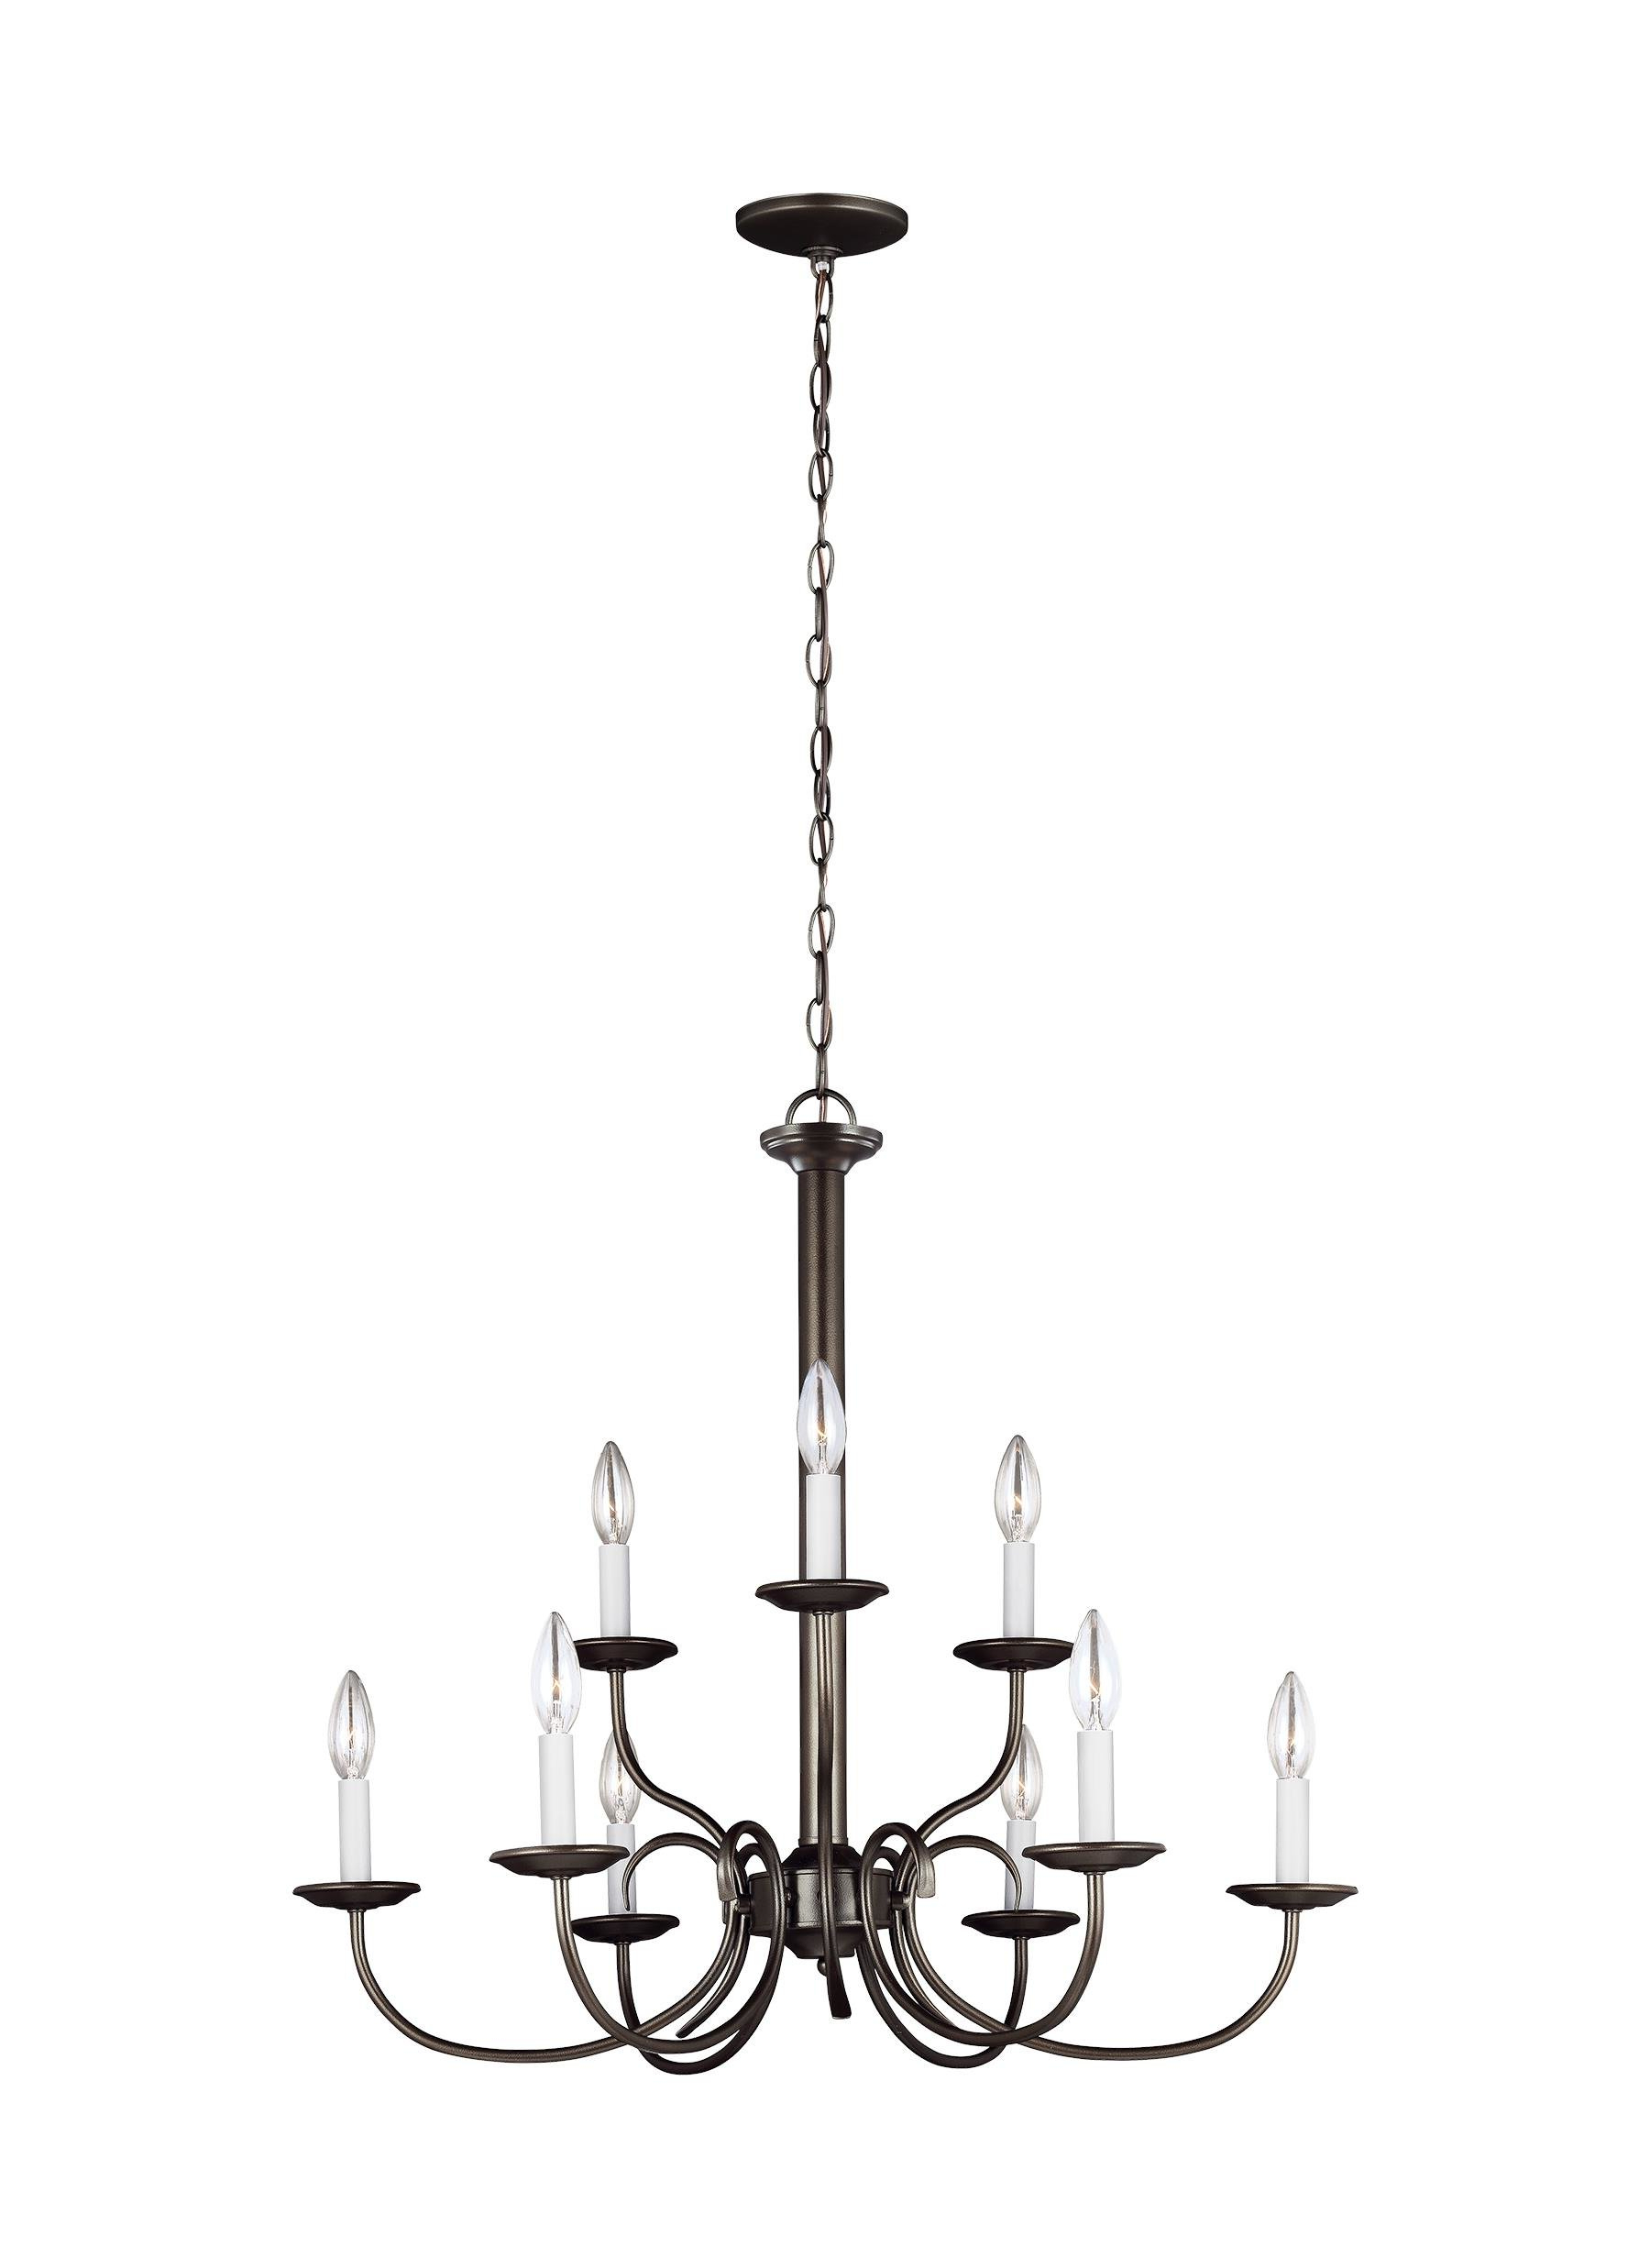 Giverny 9 Light Candle Style Chandeliers Intended For Popular Giverny 9 Light Chandelier (Gallery 7 of 20)